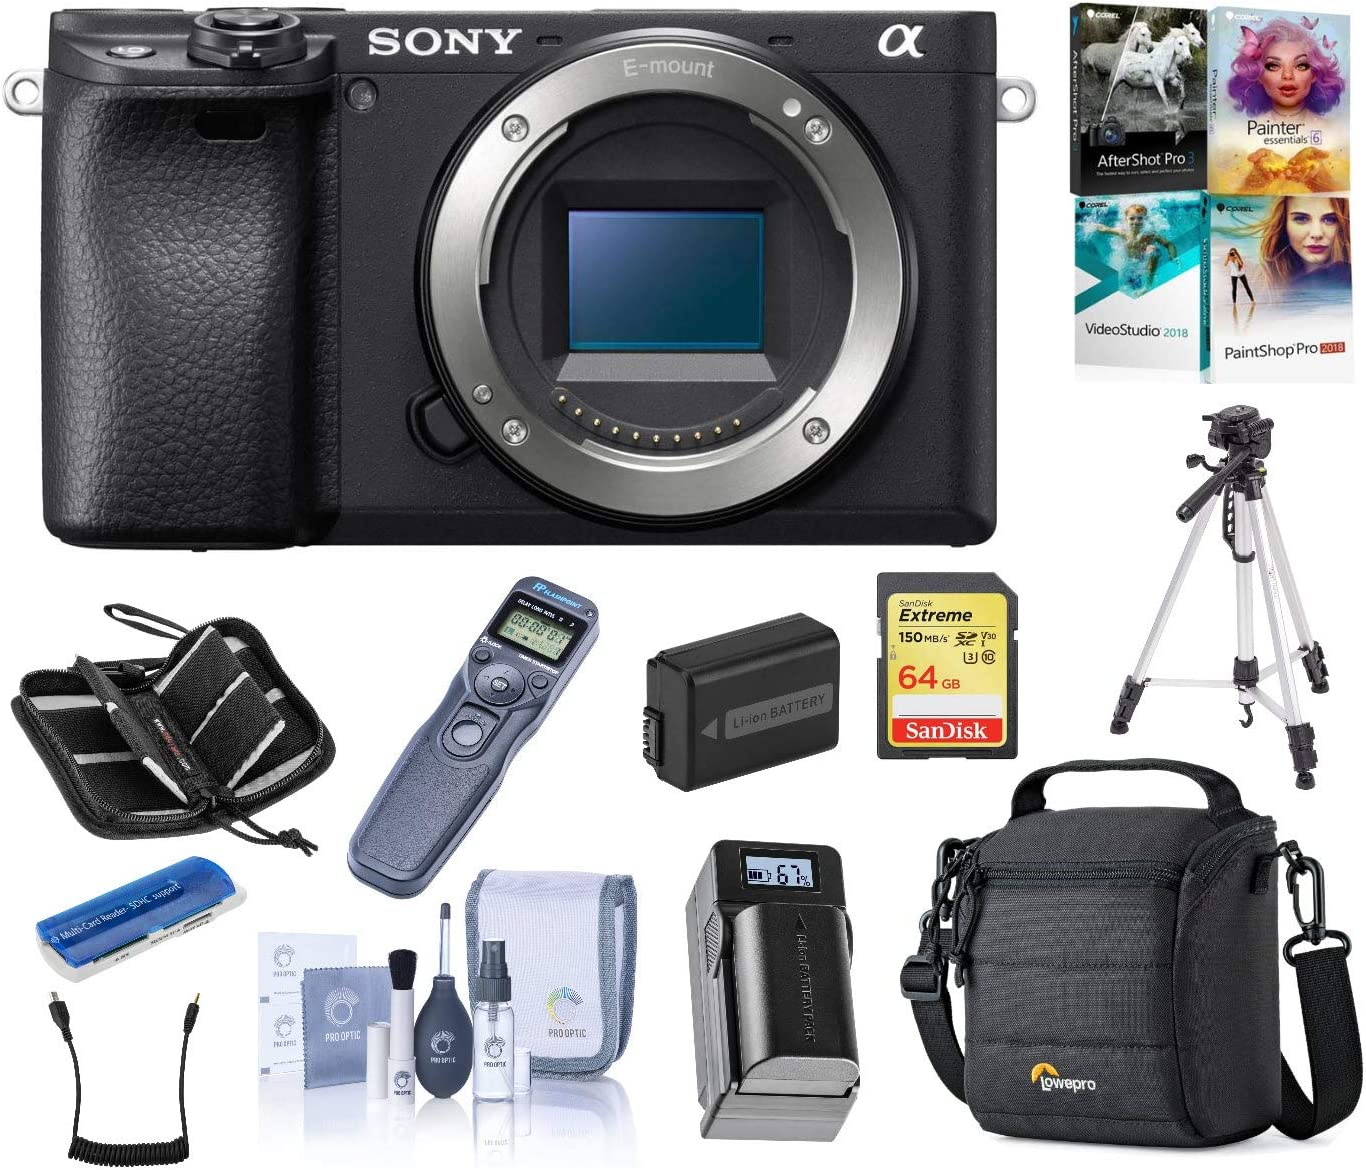 Sony Alpha a6400 Mirrorless Digital Camera Body, Bundle with Cam Bag + Battery + Remote Shutter Trigger + 64GB SD Card + Tripod + Charger + SD Card Case + Corel PC Software Kit + Cleaning Kit + More